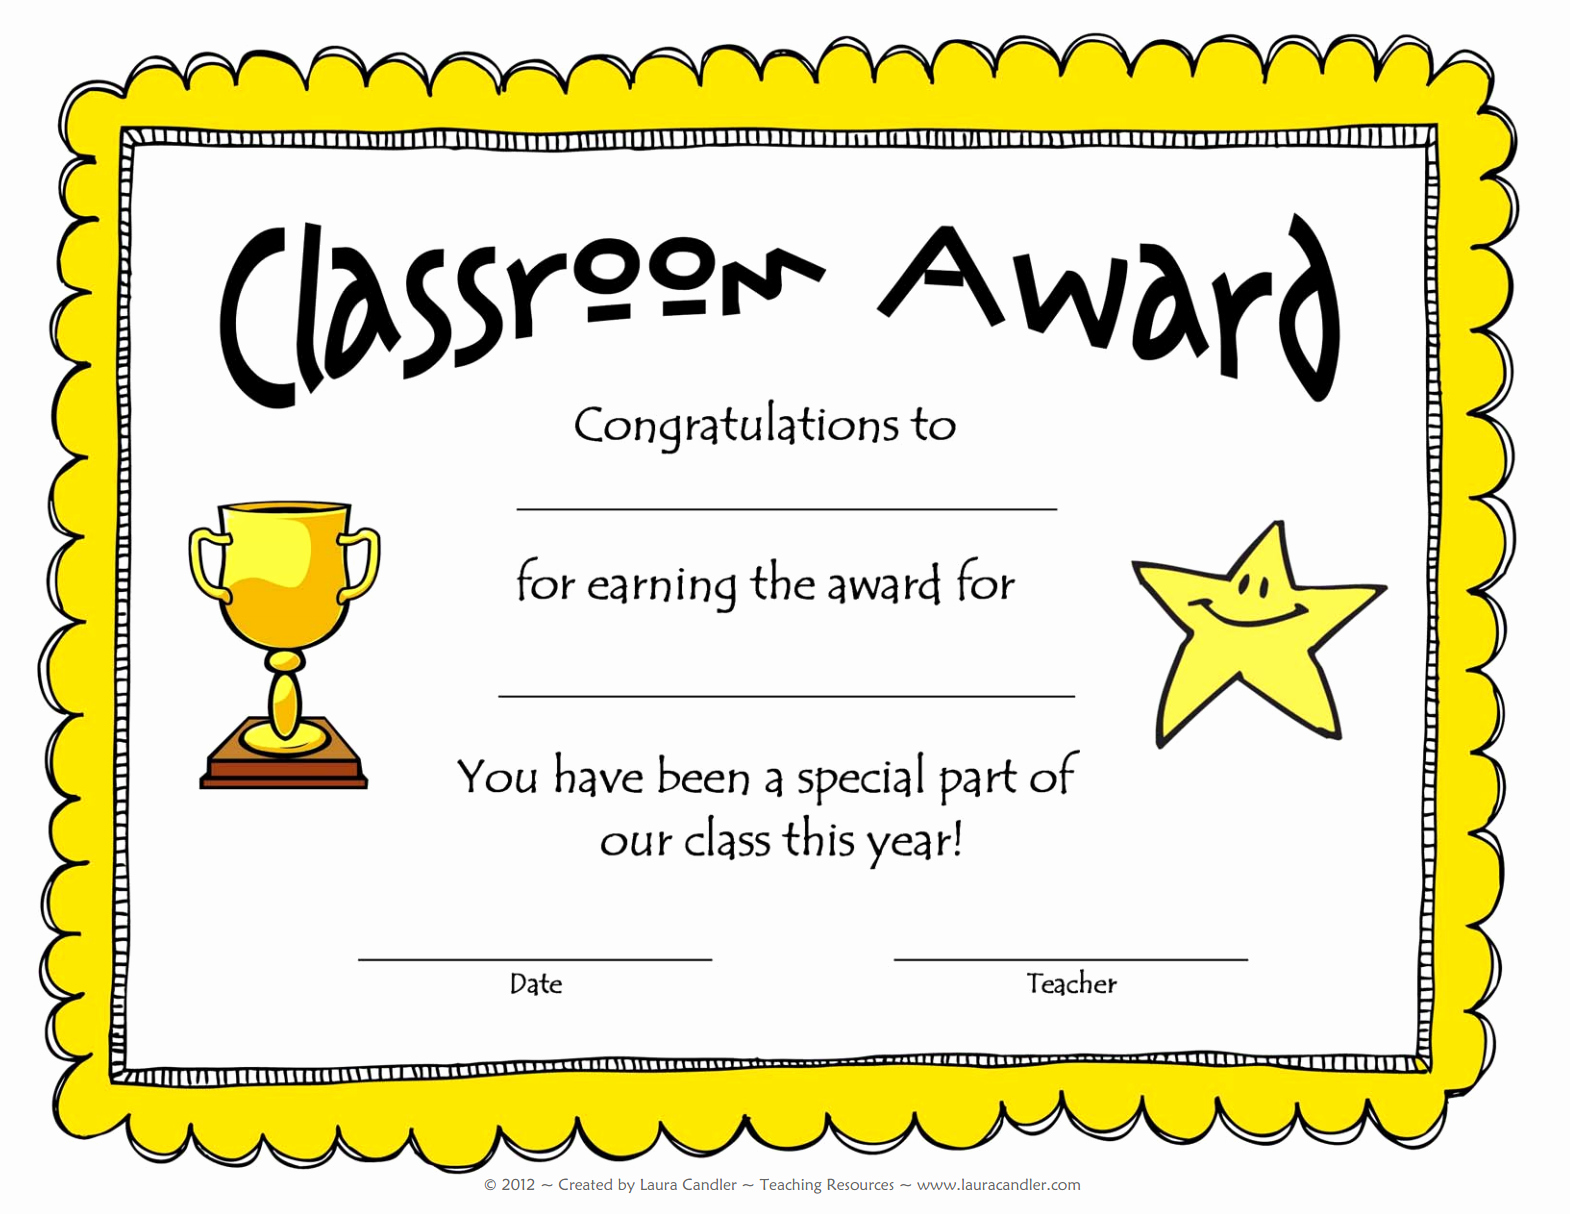 Free Printable Award Ribbons Unique Free Award Template From Laura Candler